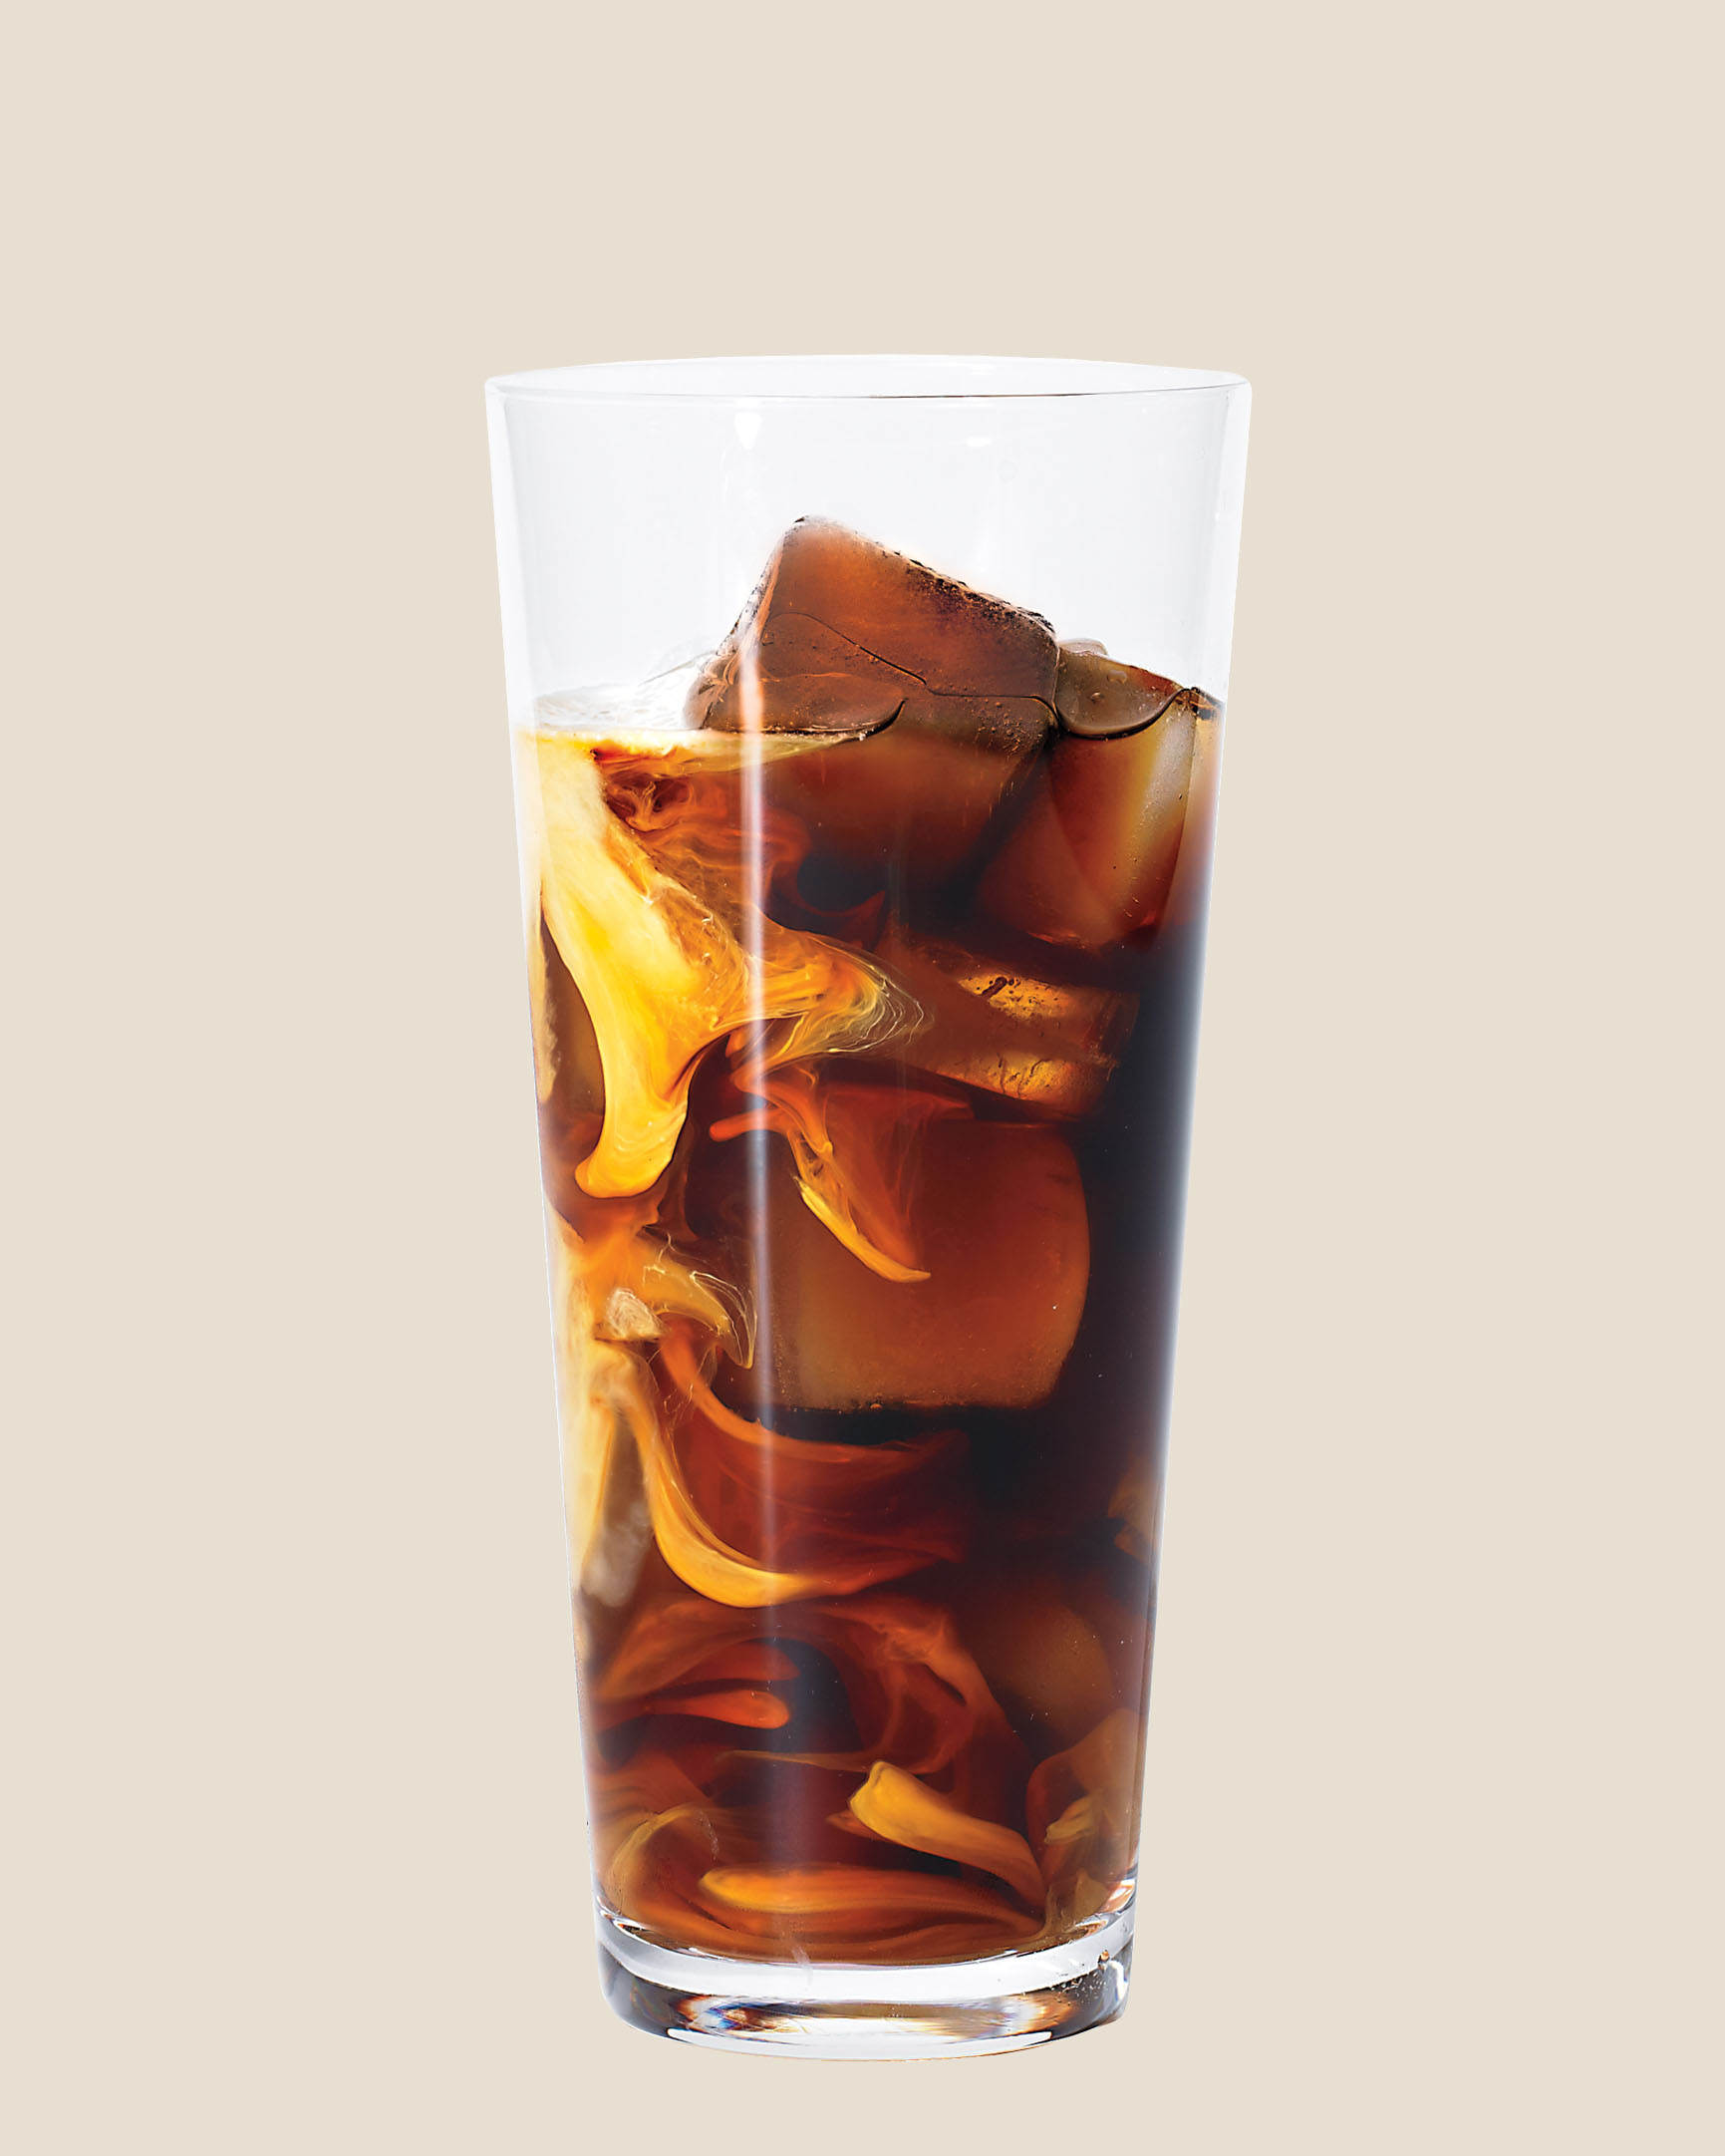 a glass of iced coffee